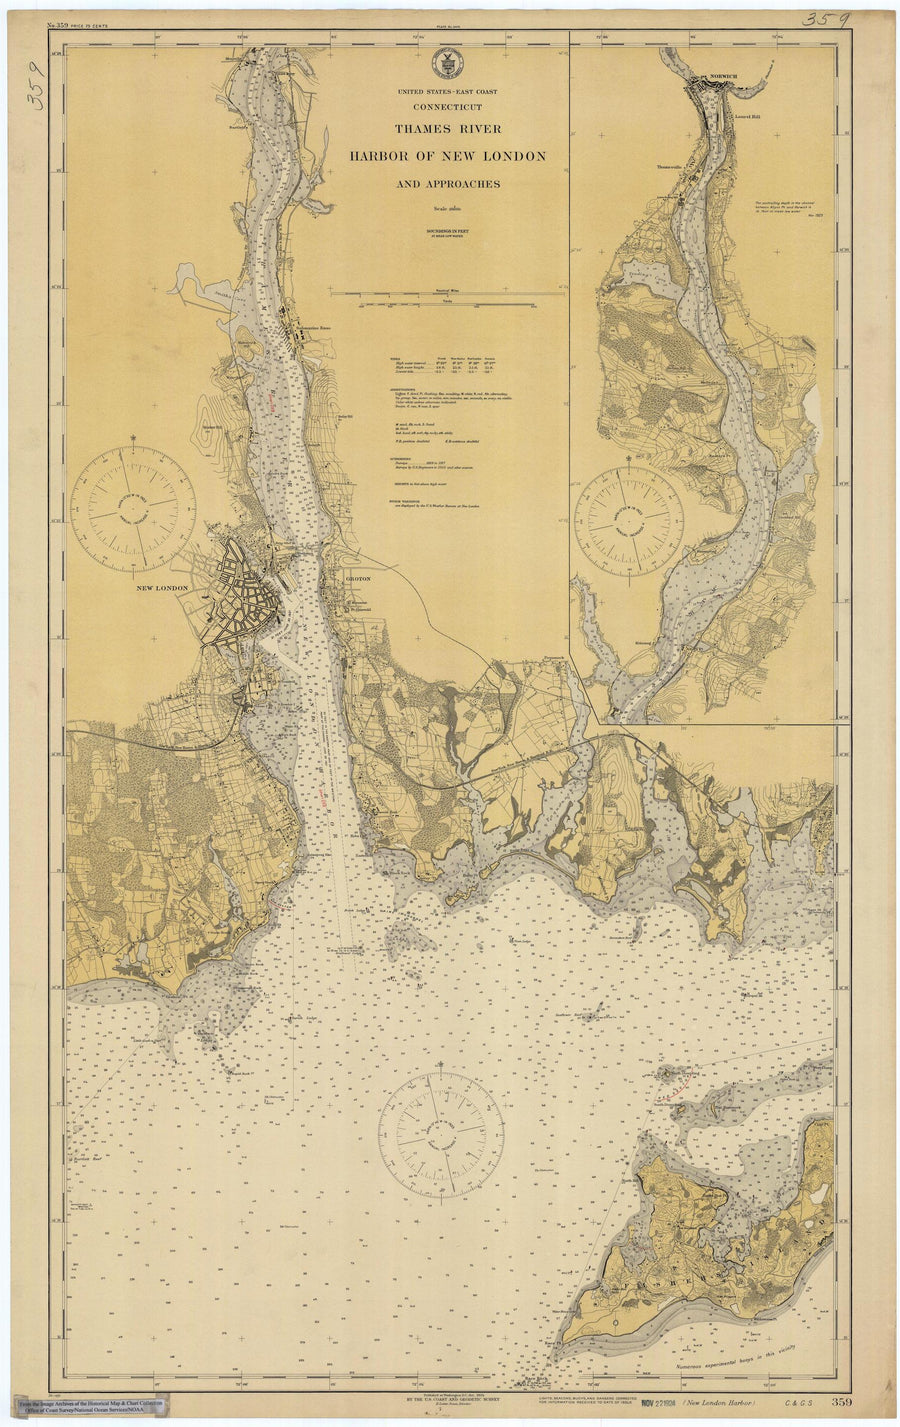 New London Harbor - Thames River Map - 1924